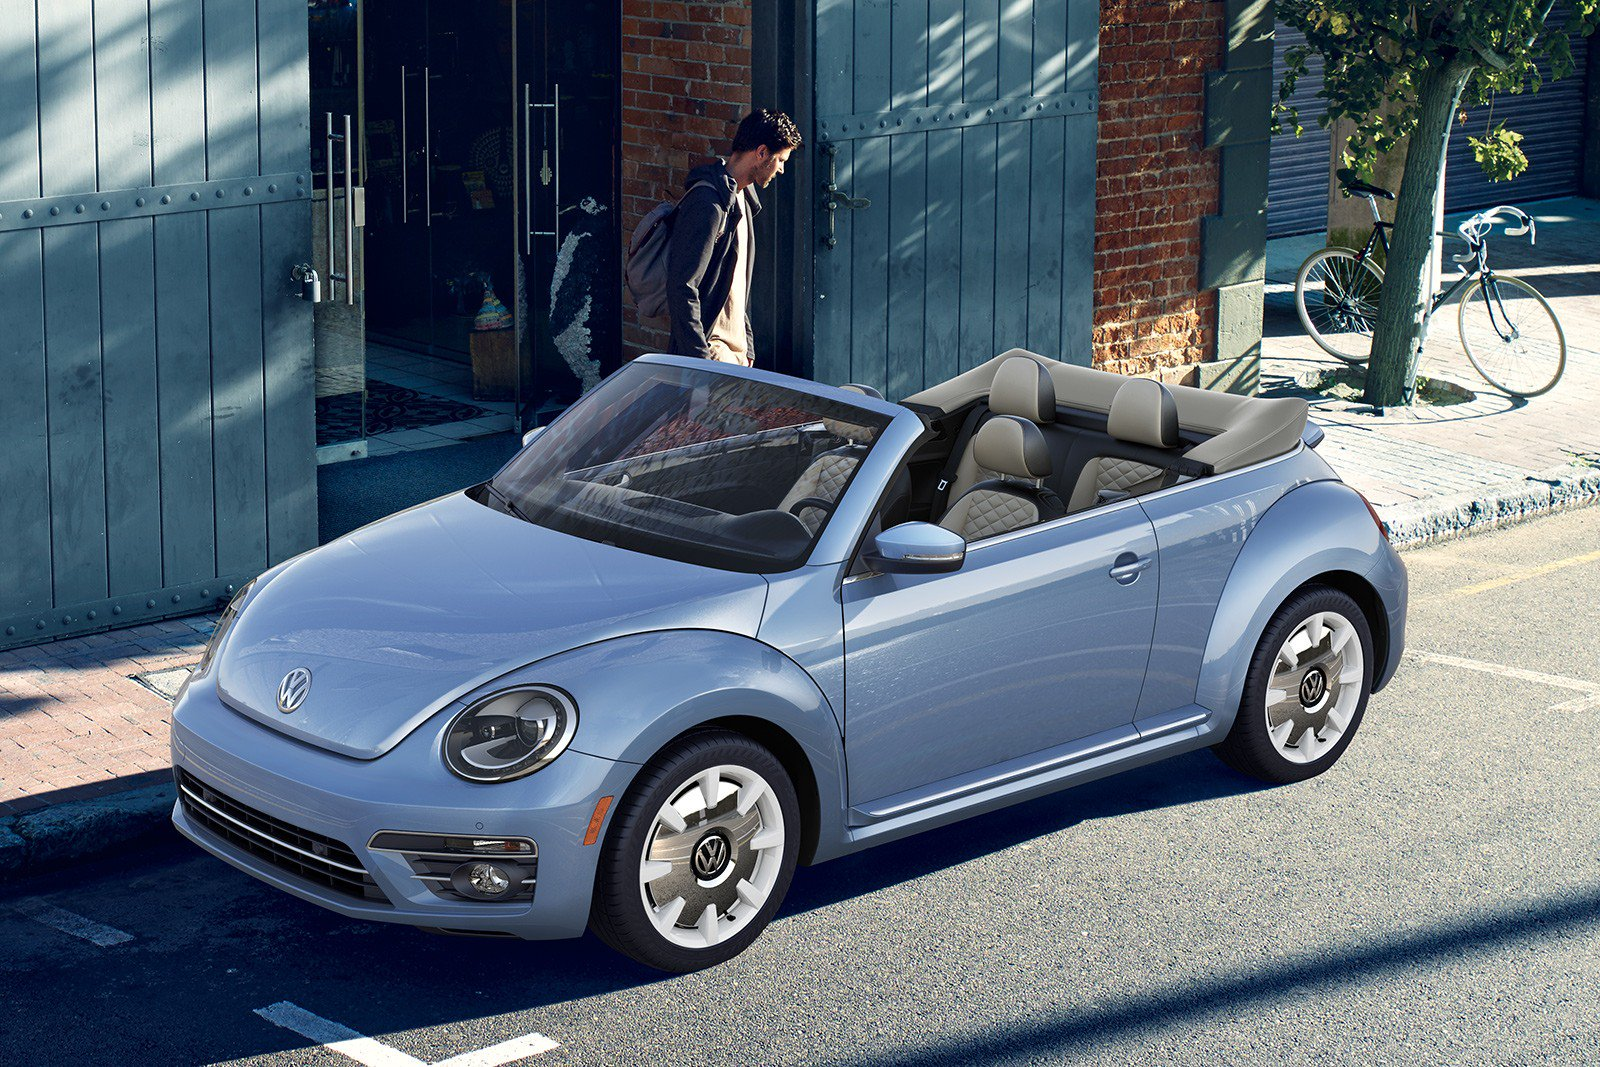 2019 Volkswagen Beetle Final Edition Officially Revealed ...